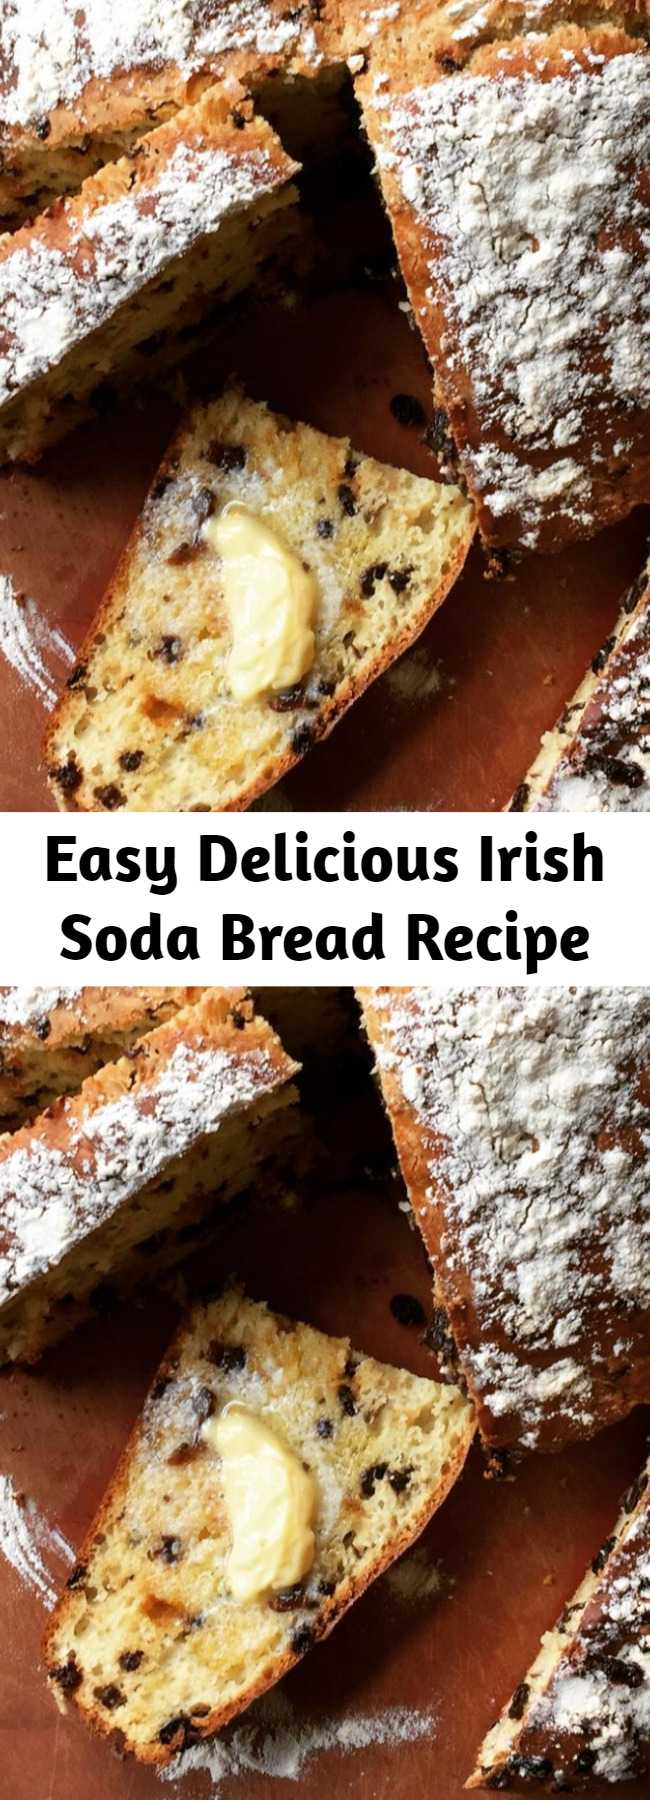 Easy Delicious Irish Soda Bread Recipe - I tried all the Irish soda bread recipes I could find. This was by far the best -- not just easy, but beautiful, amazingly moist and flavorful. I've made it over and over at the requests of family and friends. Toasts beautifully too, and wonderful with marmalade.